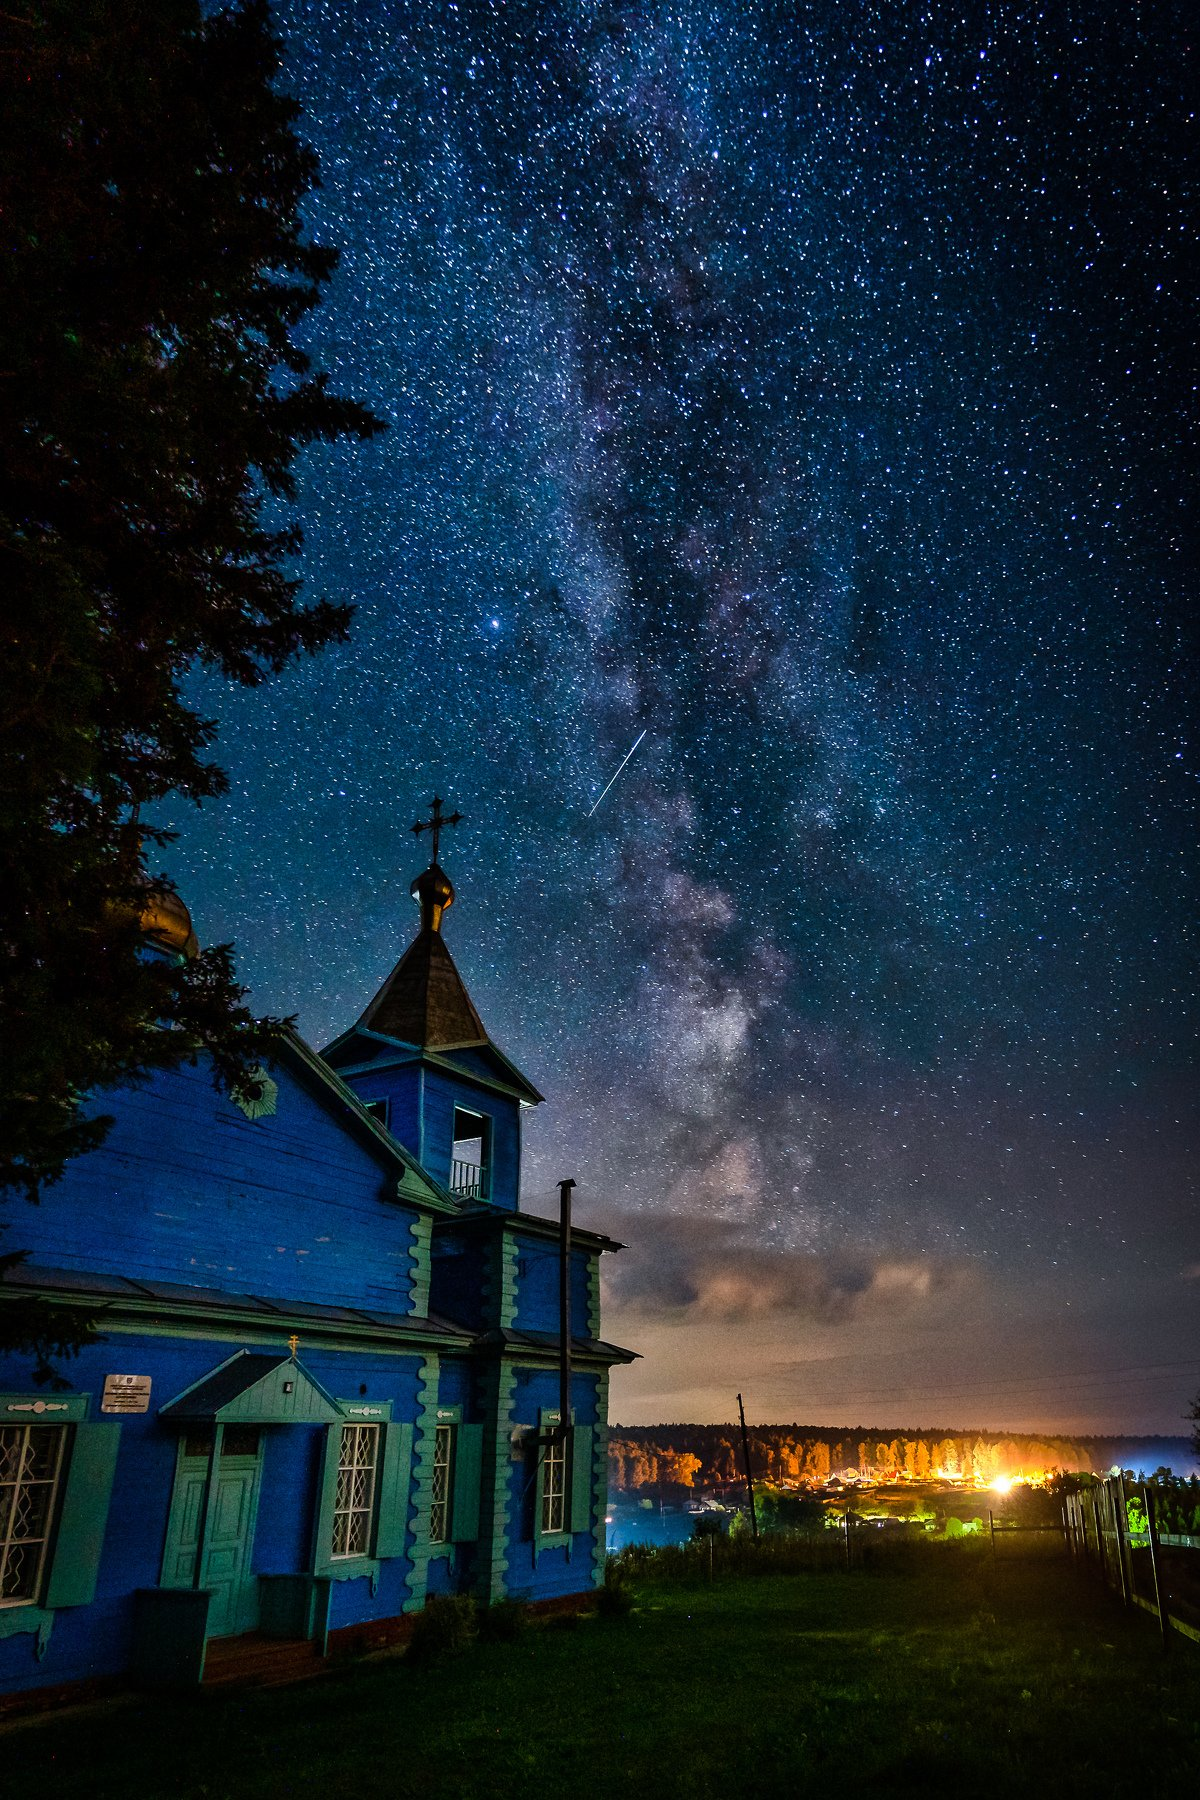 milkyway, night, longexposure, church, siberia, stars,, Алексей Вымятнин